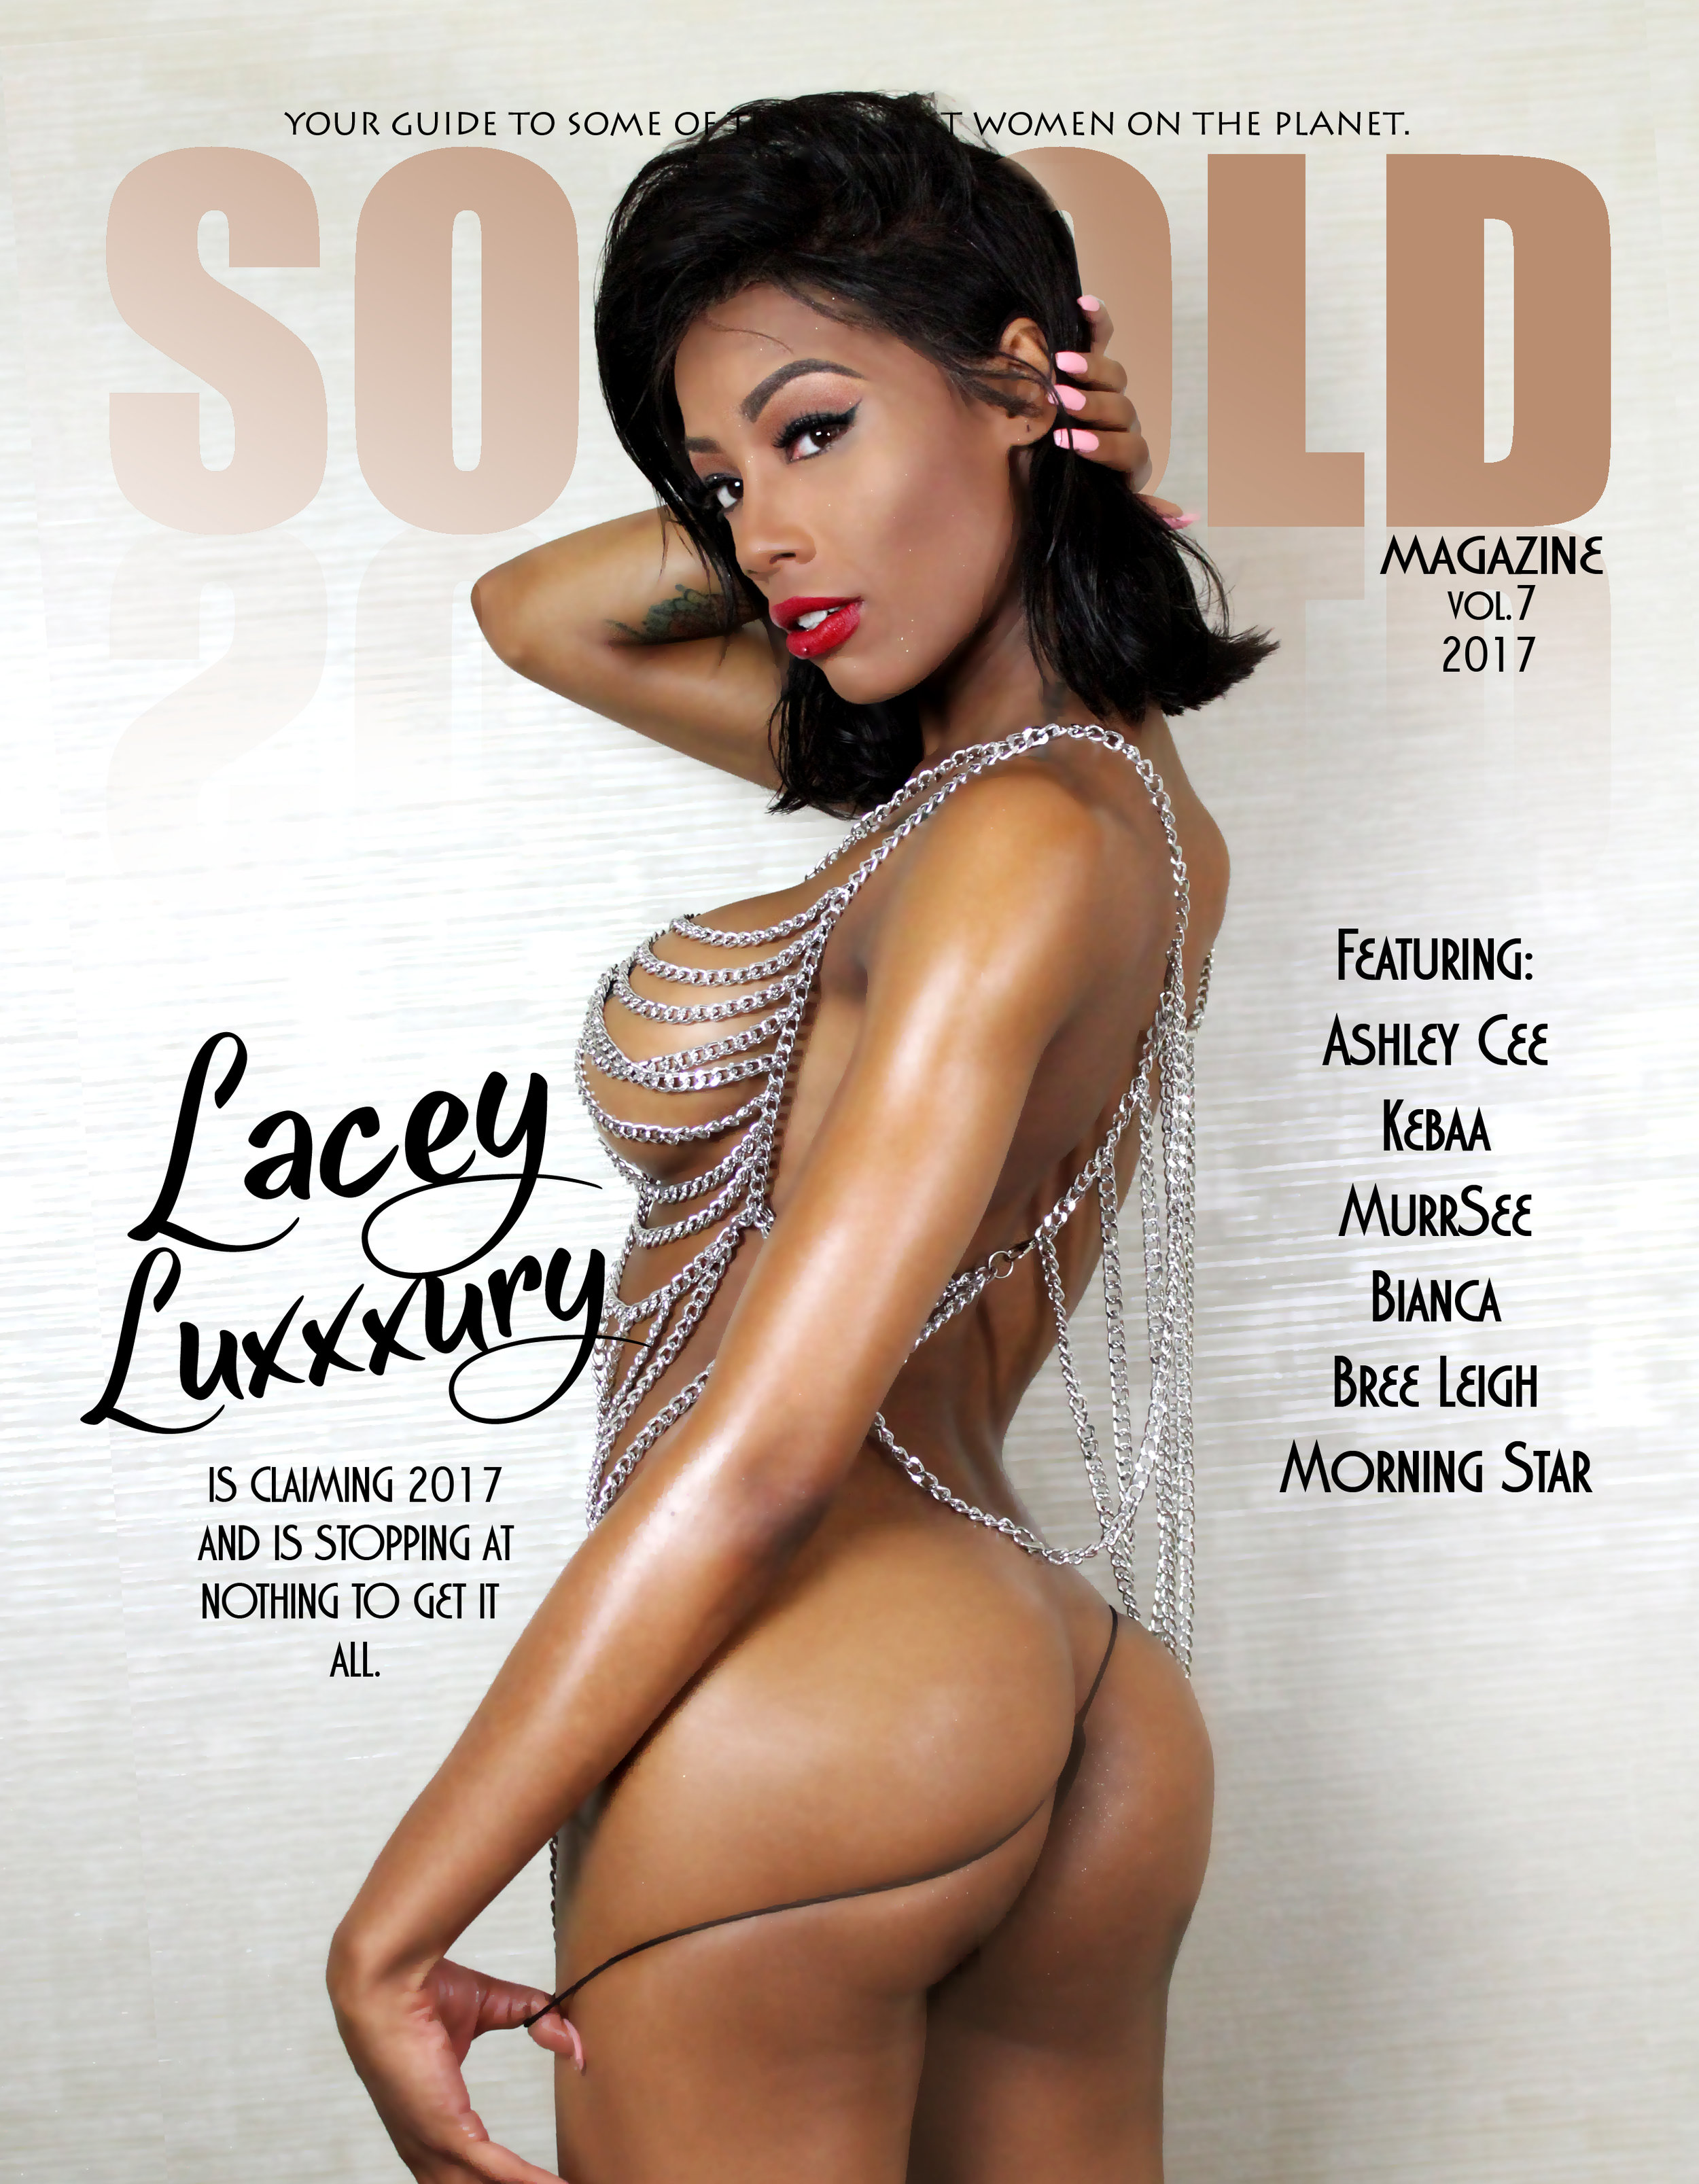 SO KOLD MAG 7 COVER2 LACEY LUXXXURY.jpg